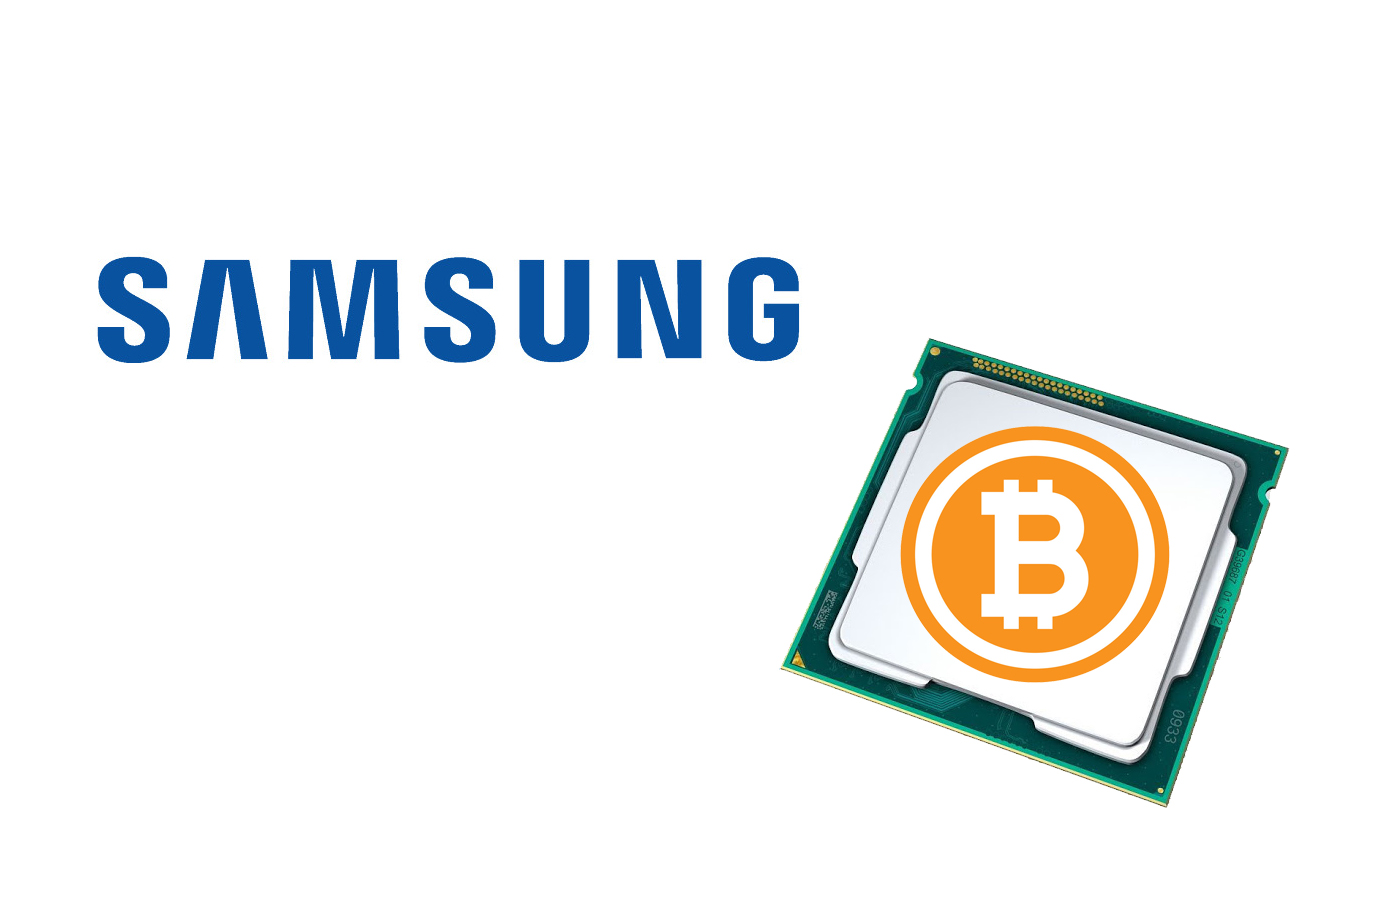 Samsung Designs New Chip to Secure Crypto Transactions